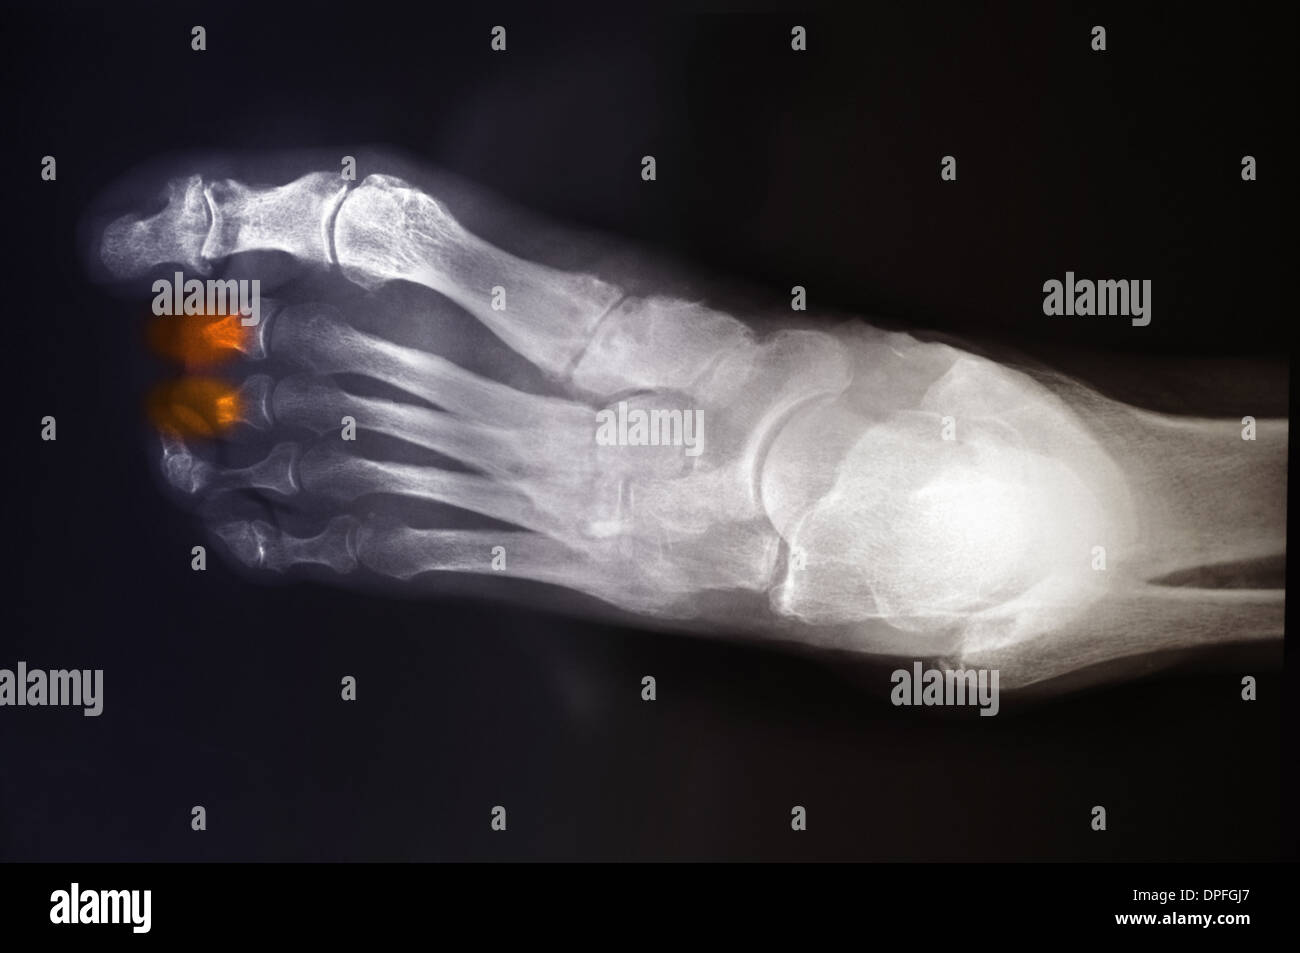 Foot Infection Stock Photos & Foot Infection Stock Images - Alamy